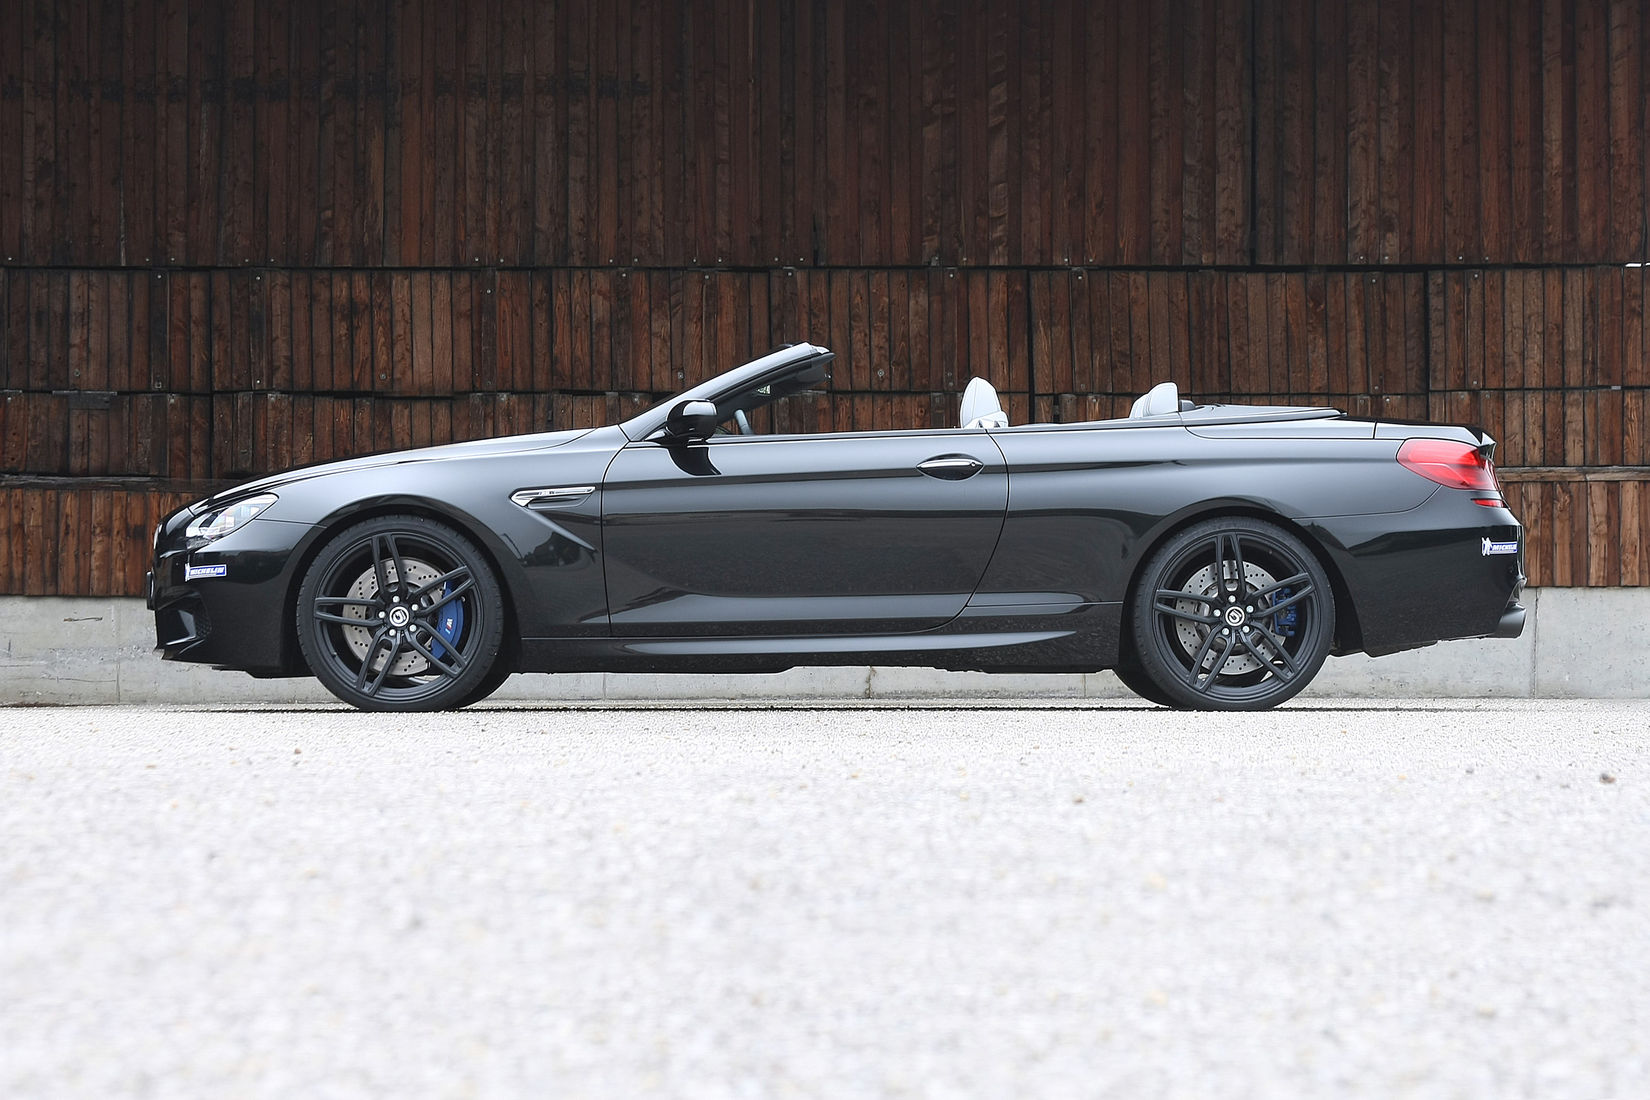 2015 G-Power BMW M6 F12 Convertible - HD Pictures ...